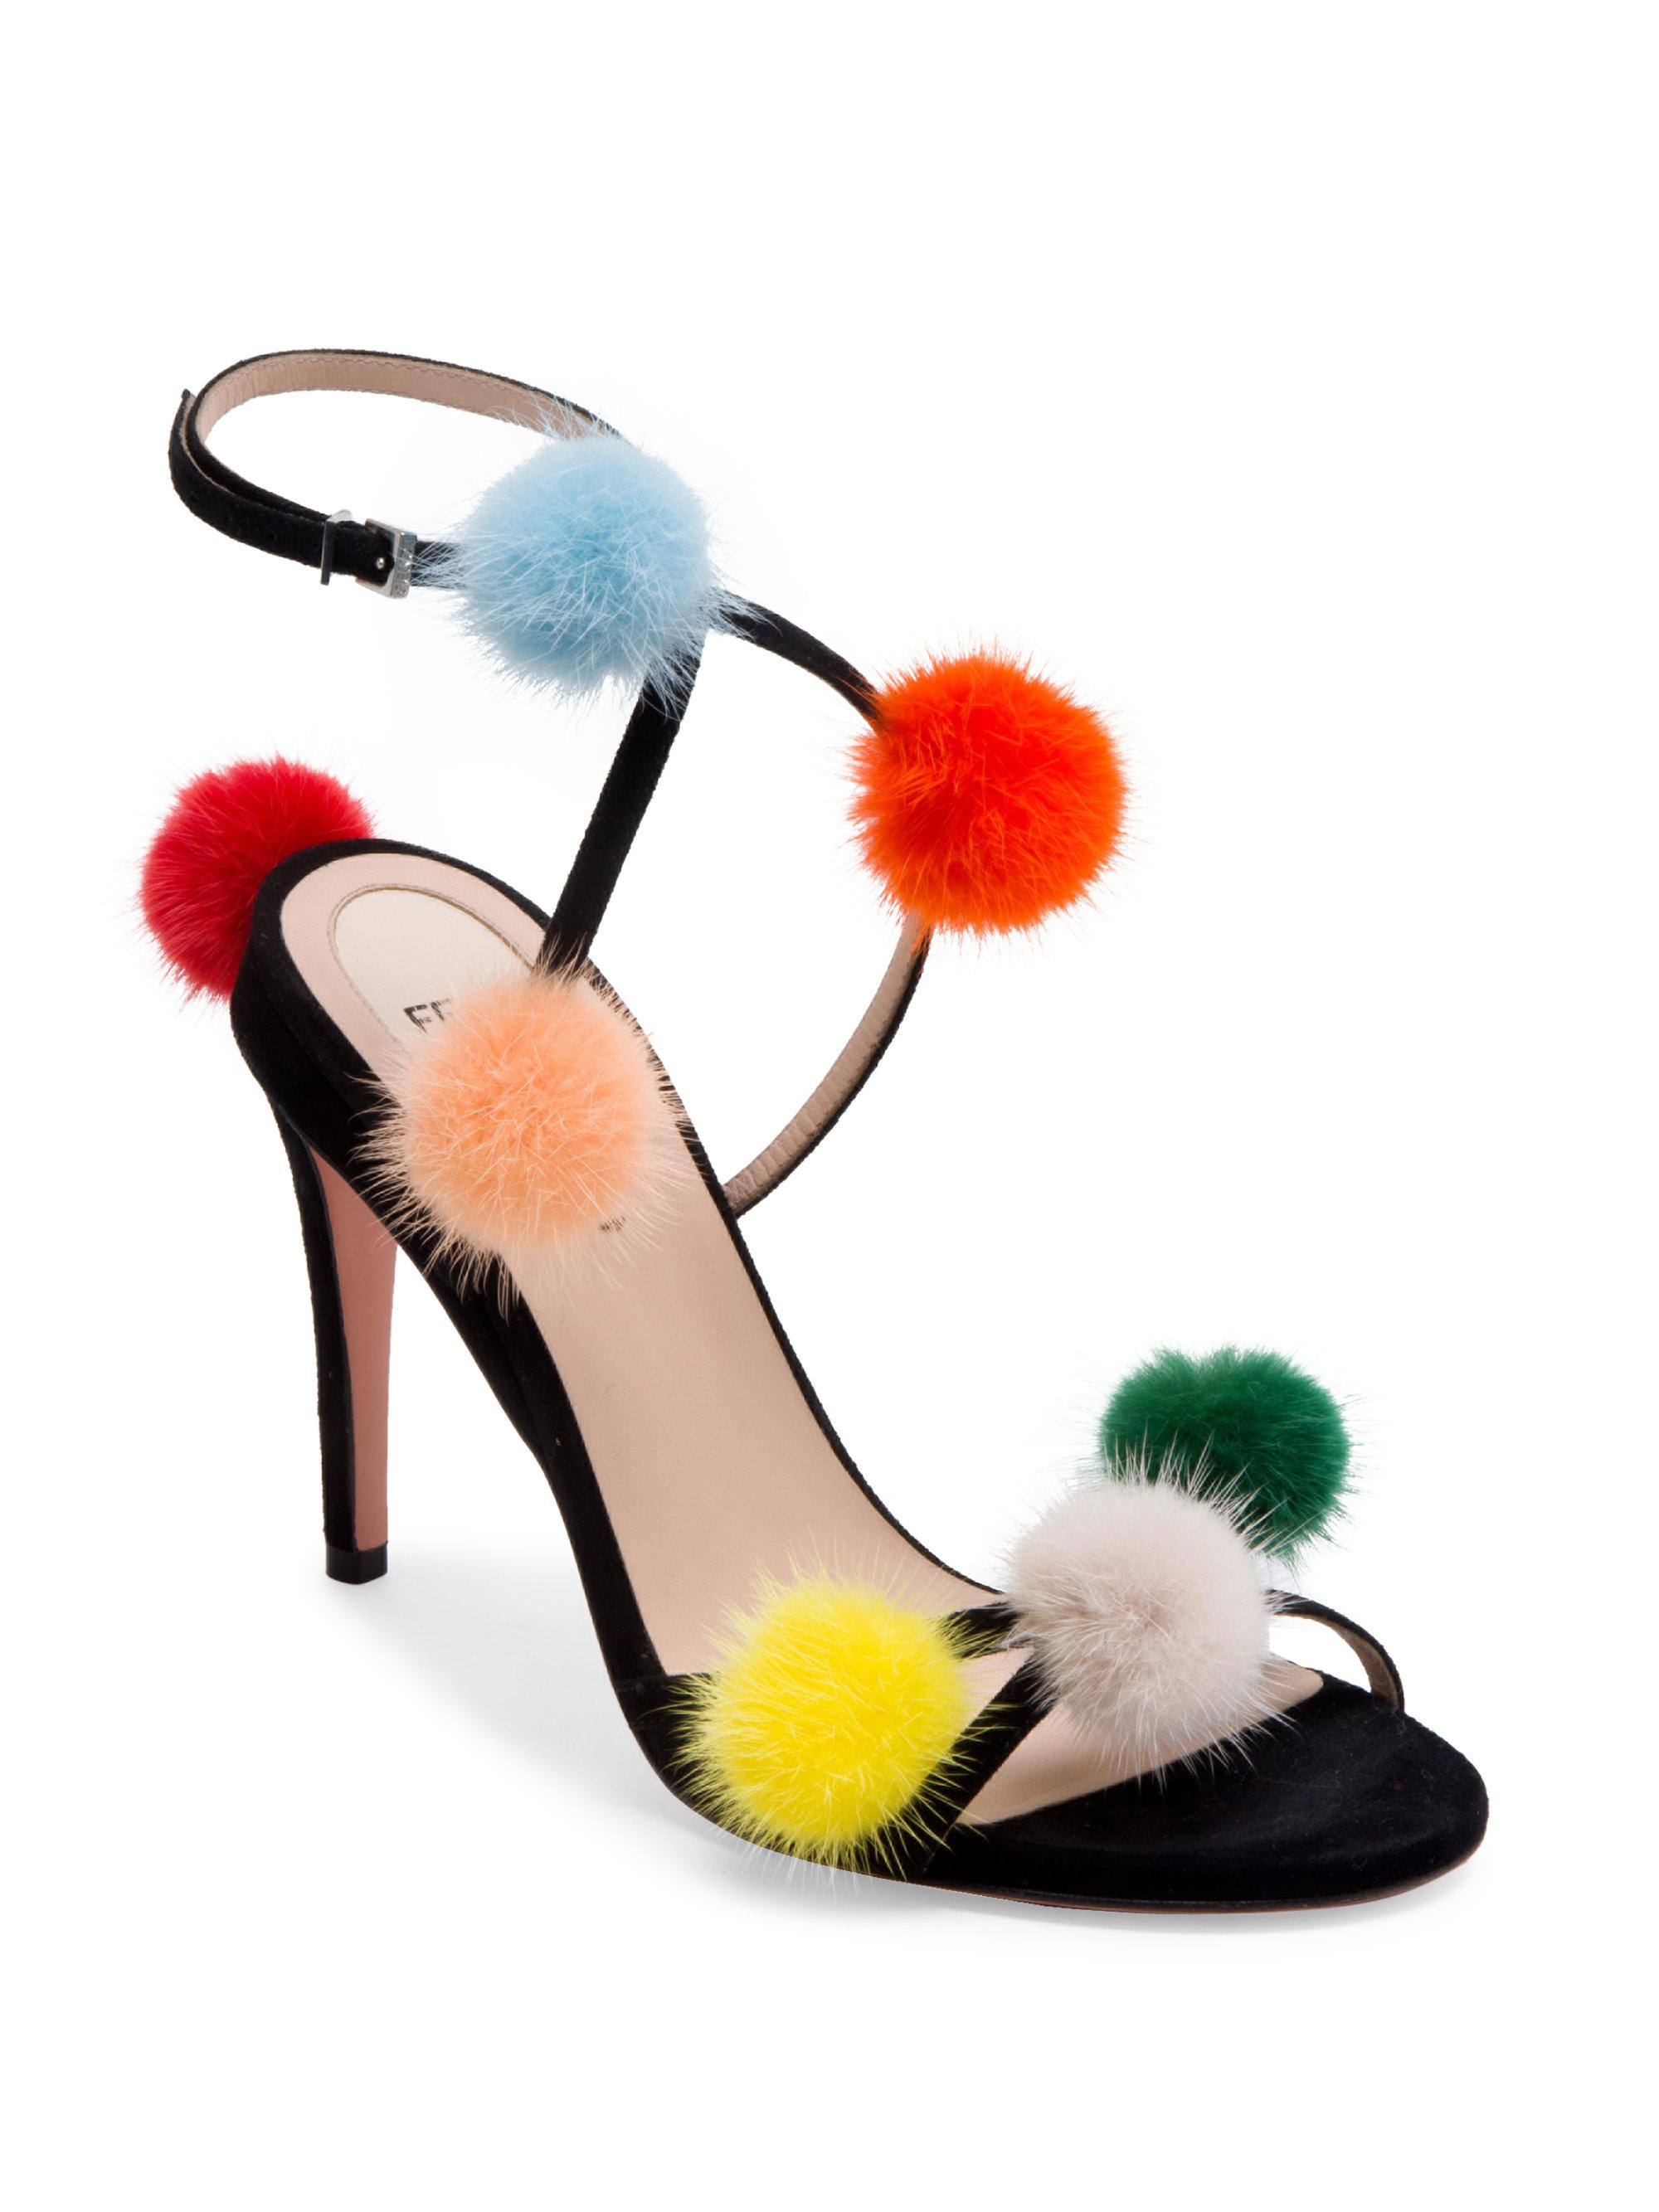 Fendi Mink-Trimmed Suede Sandals recommend cheap price sale with mastercard very cheap cheap online with paypal 9uuTDH